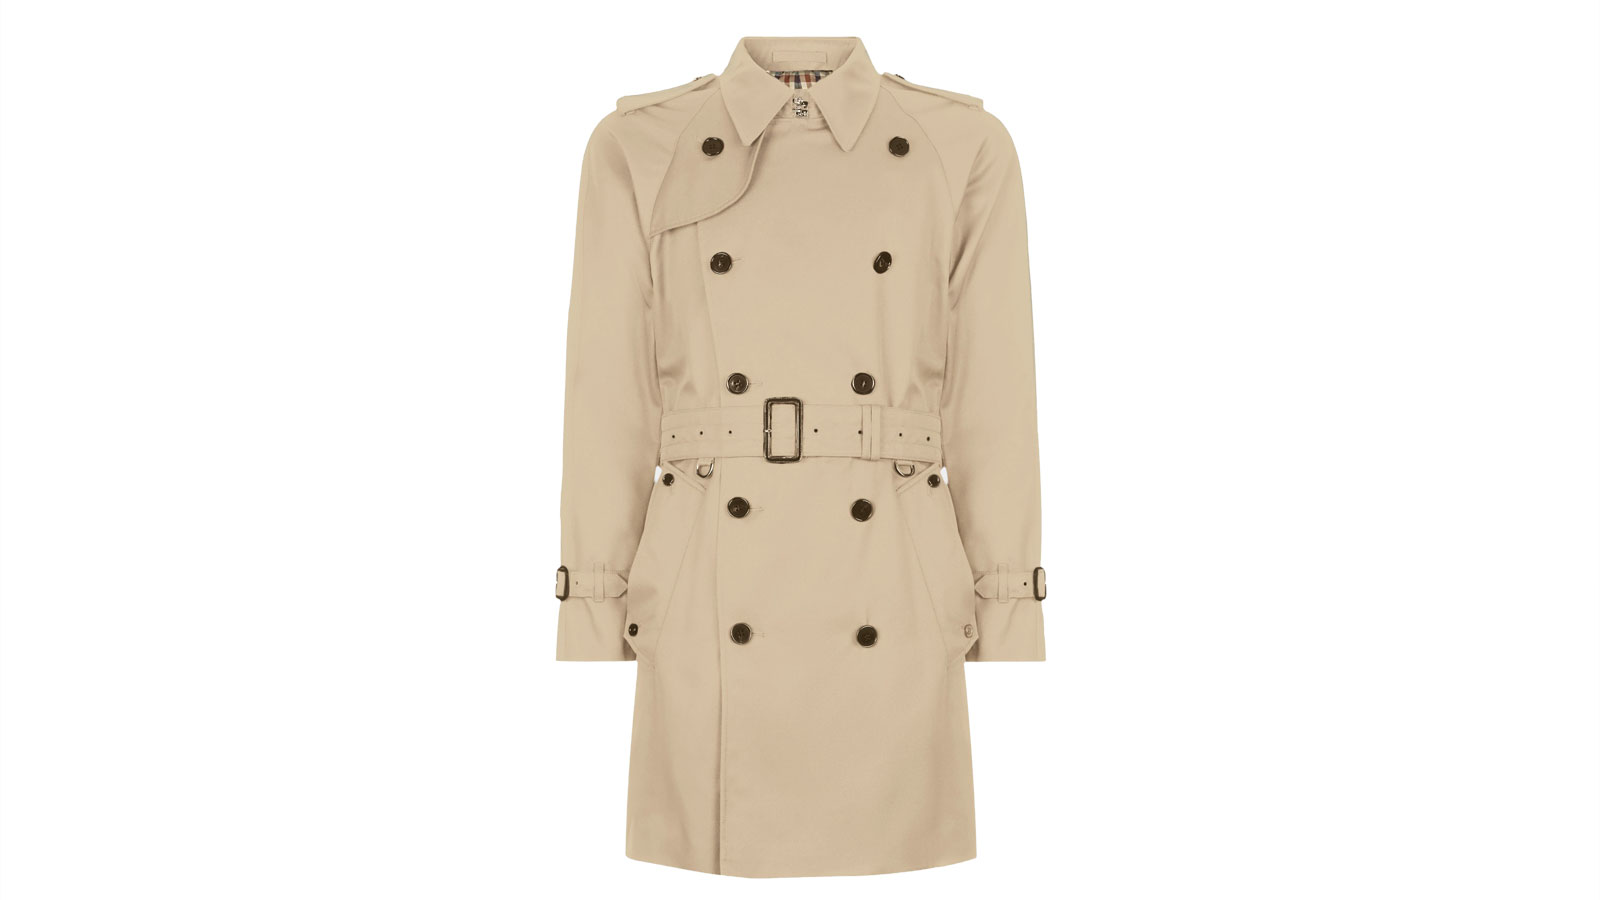 Aquascutum Corby Double Breasted Men's Trench Coat   The Best Men's Trench Coats